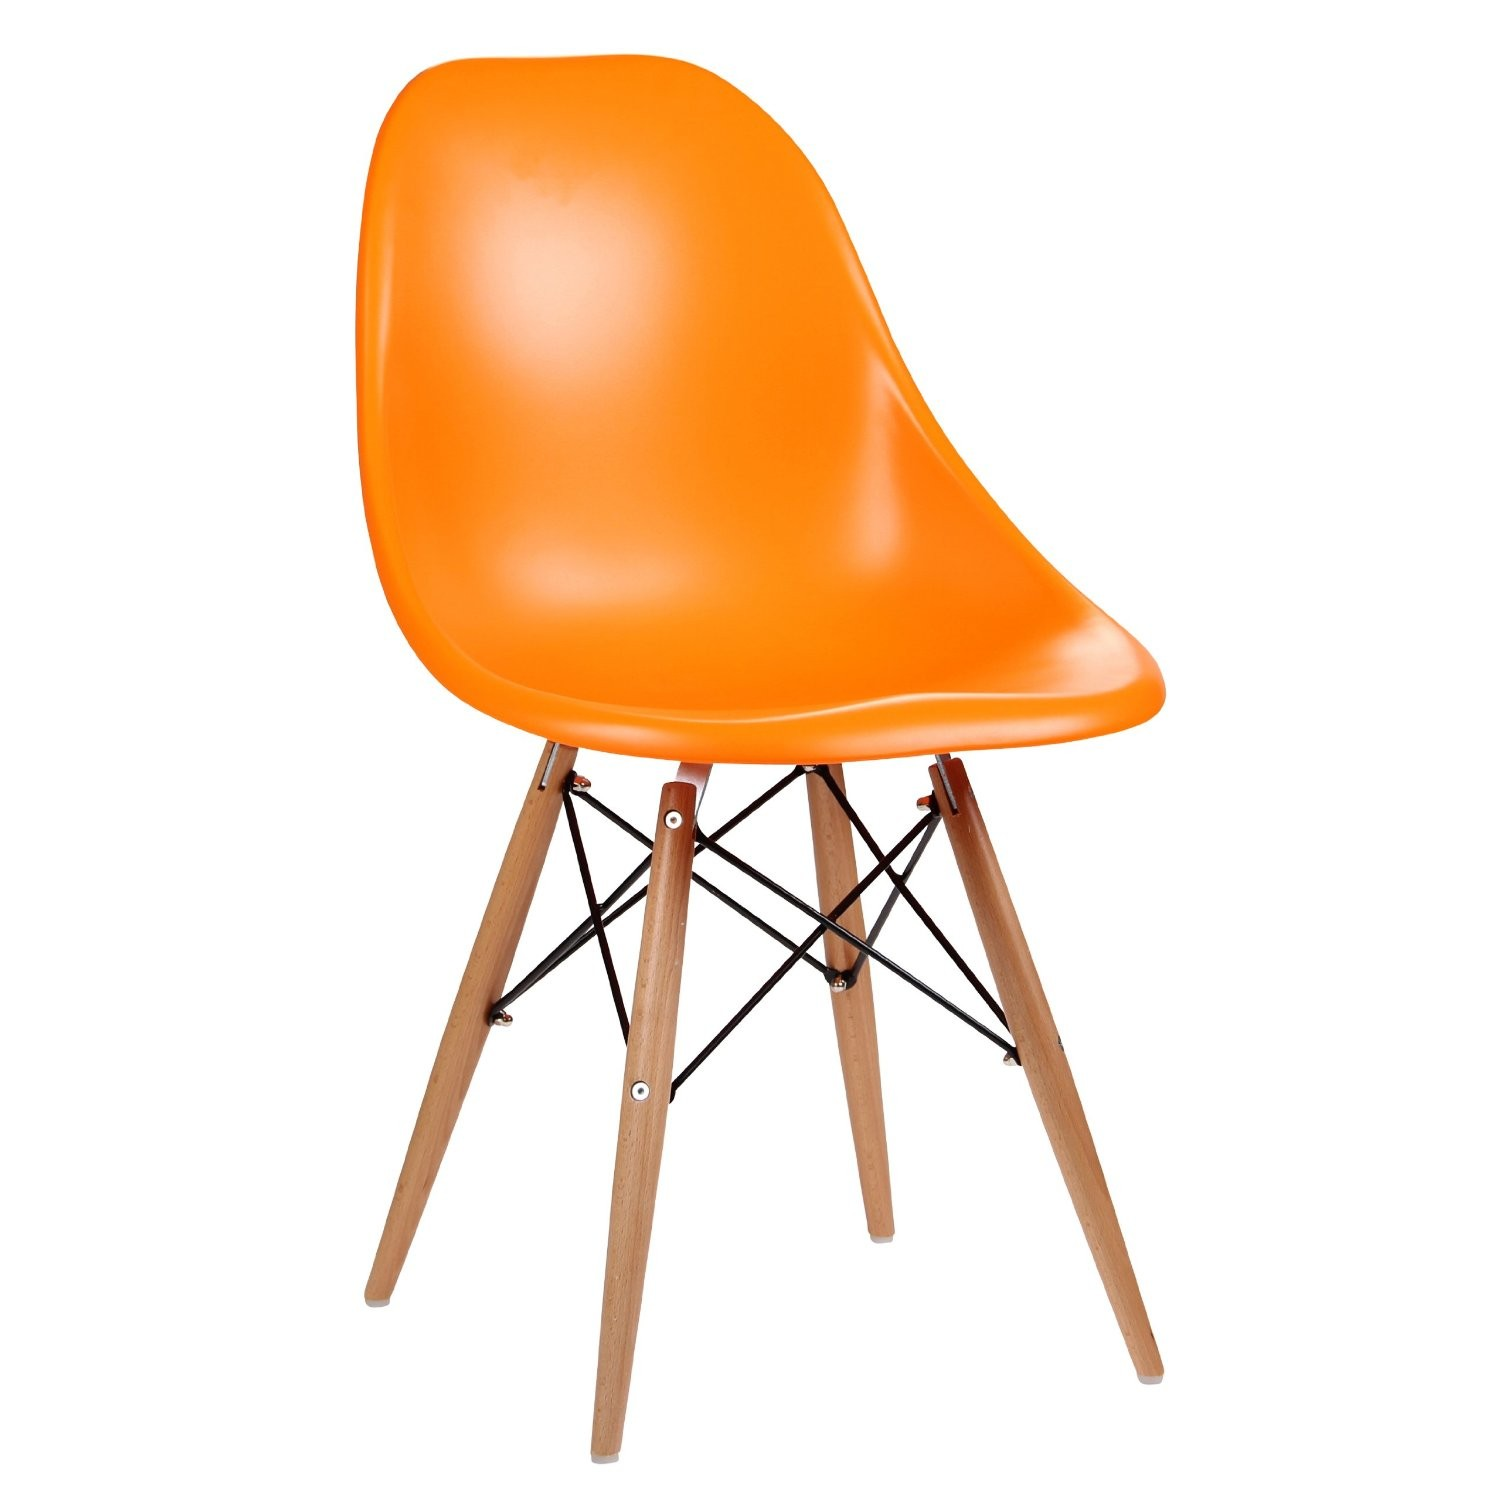 Eames Inspired Moulded Orange Dining Chair